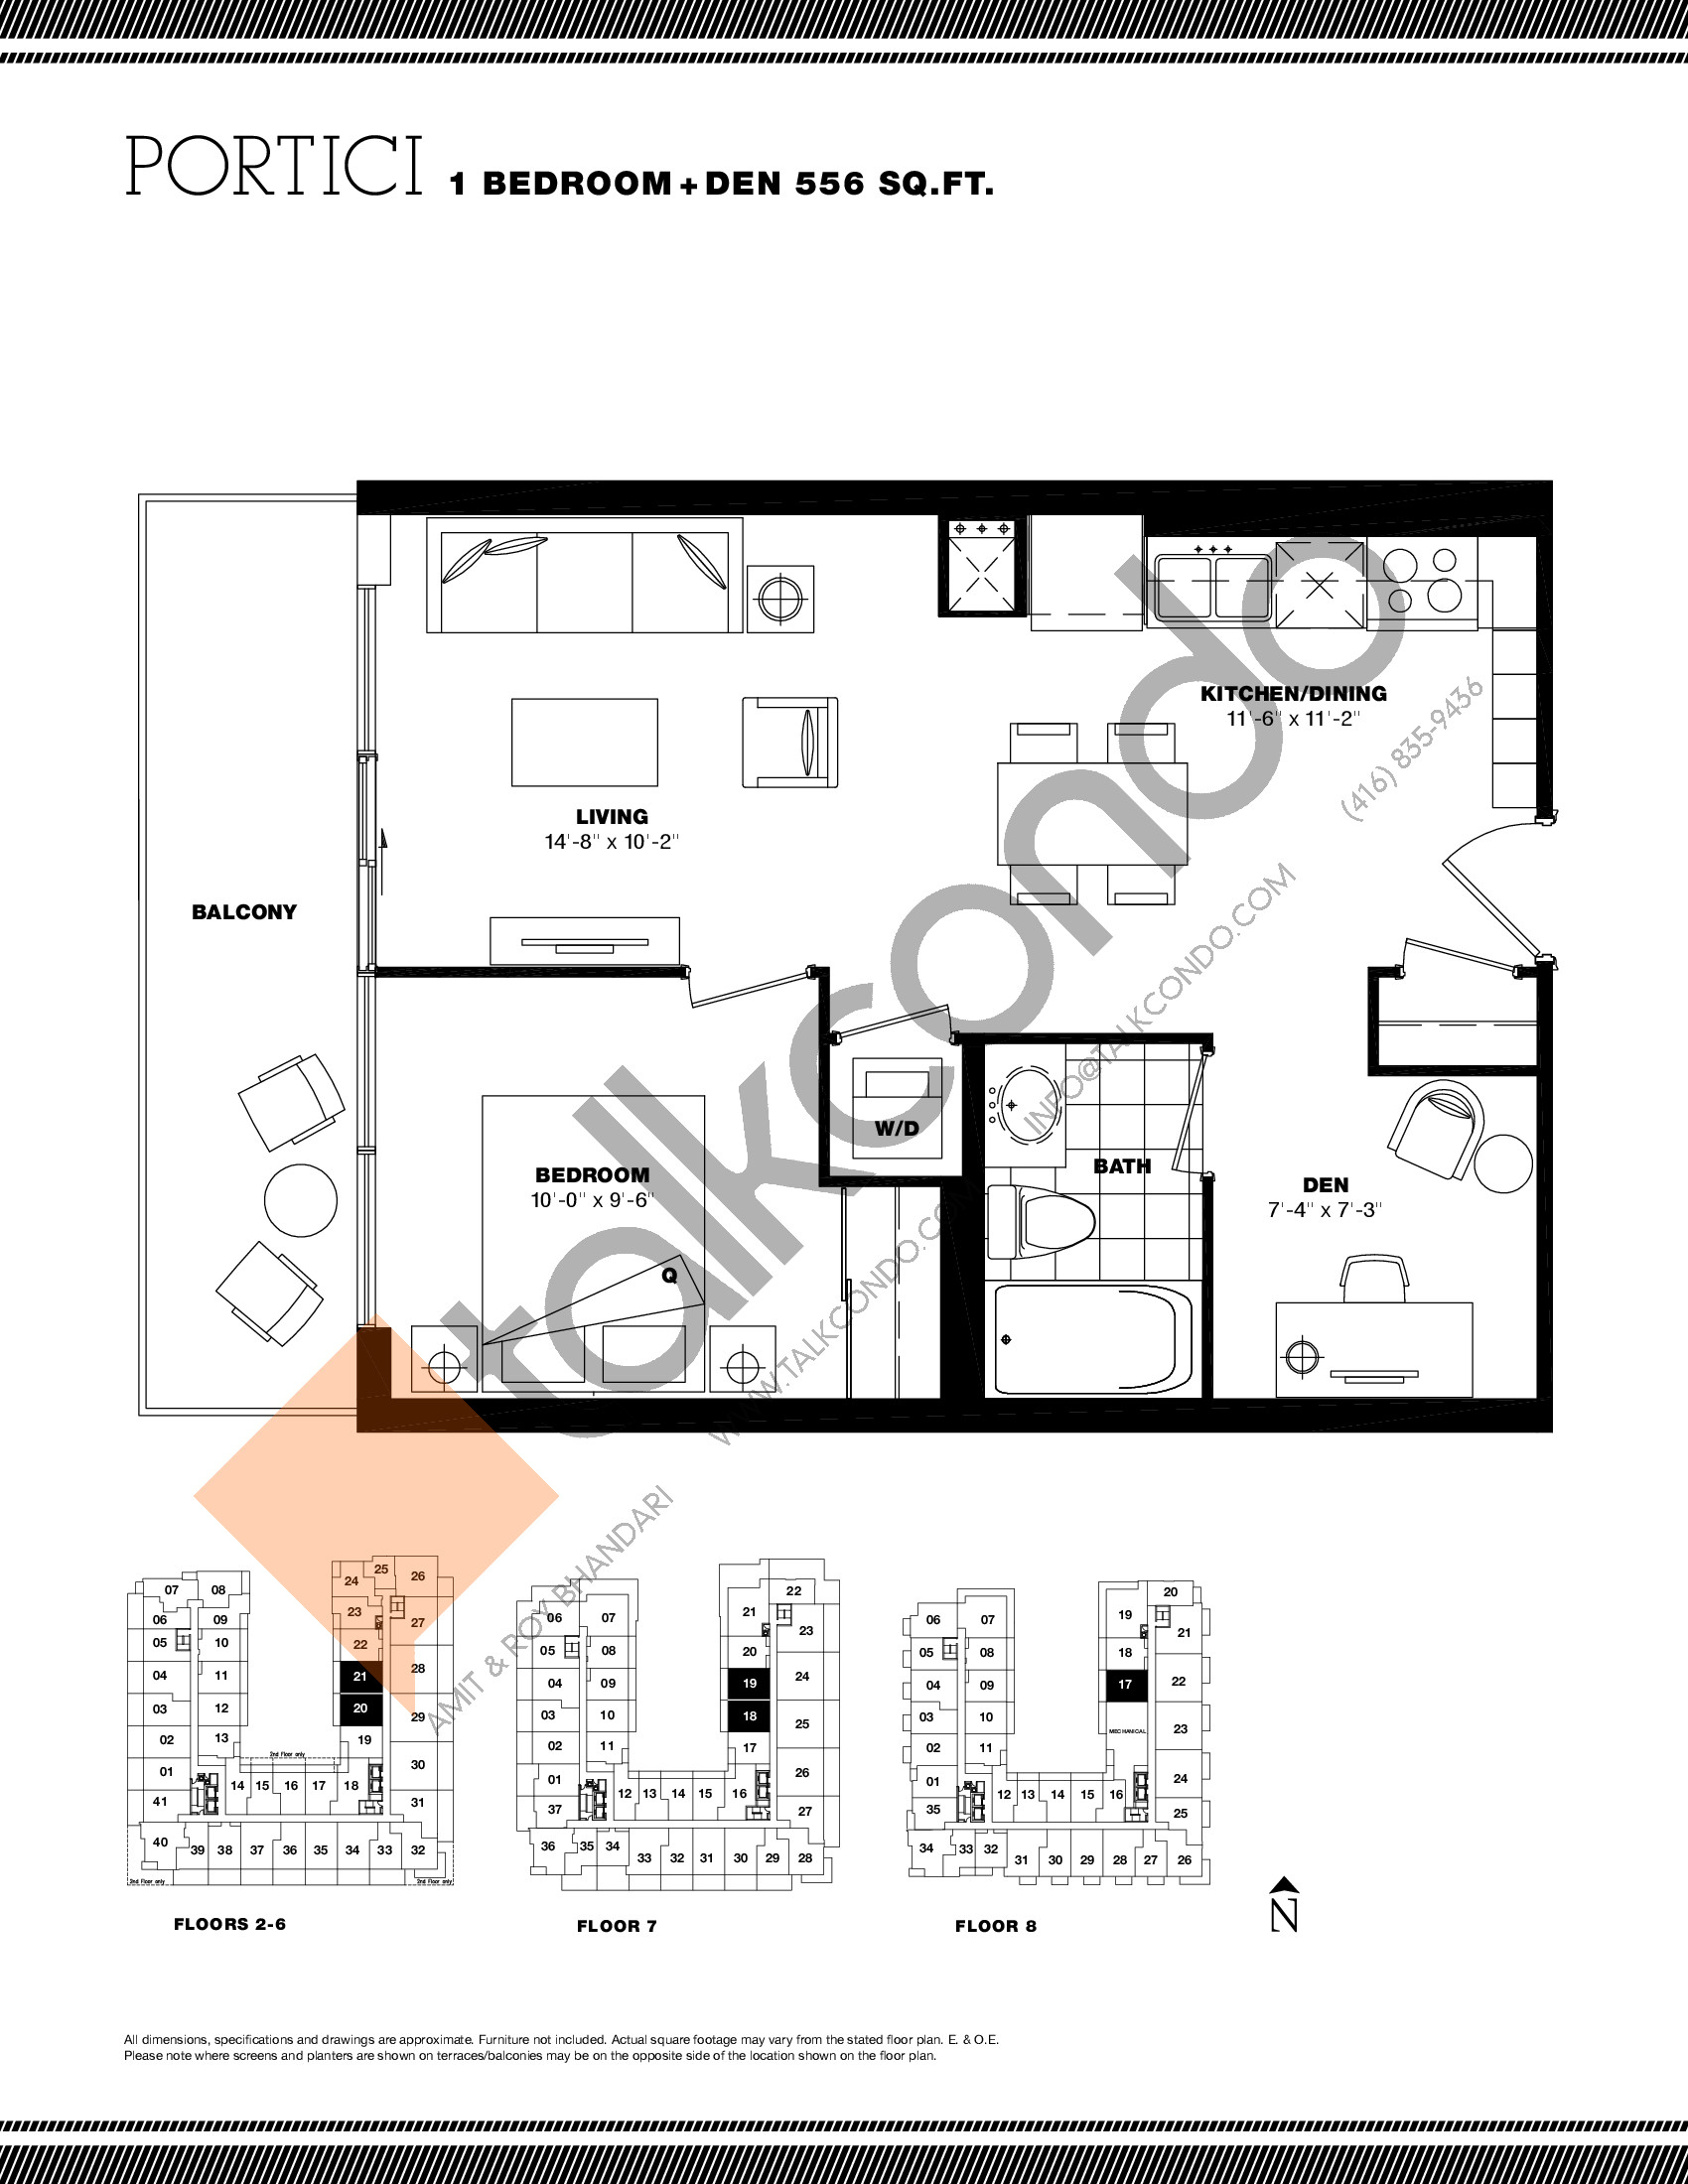 Portici Floor Plan at Residenze Palazzo at Treviso 3 Condos - 556 sq.ft